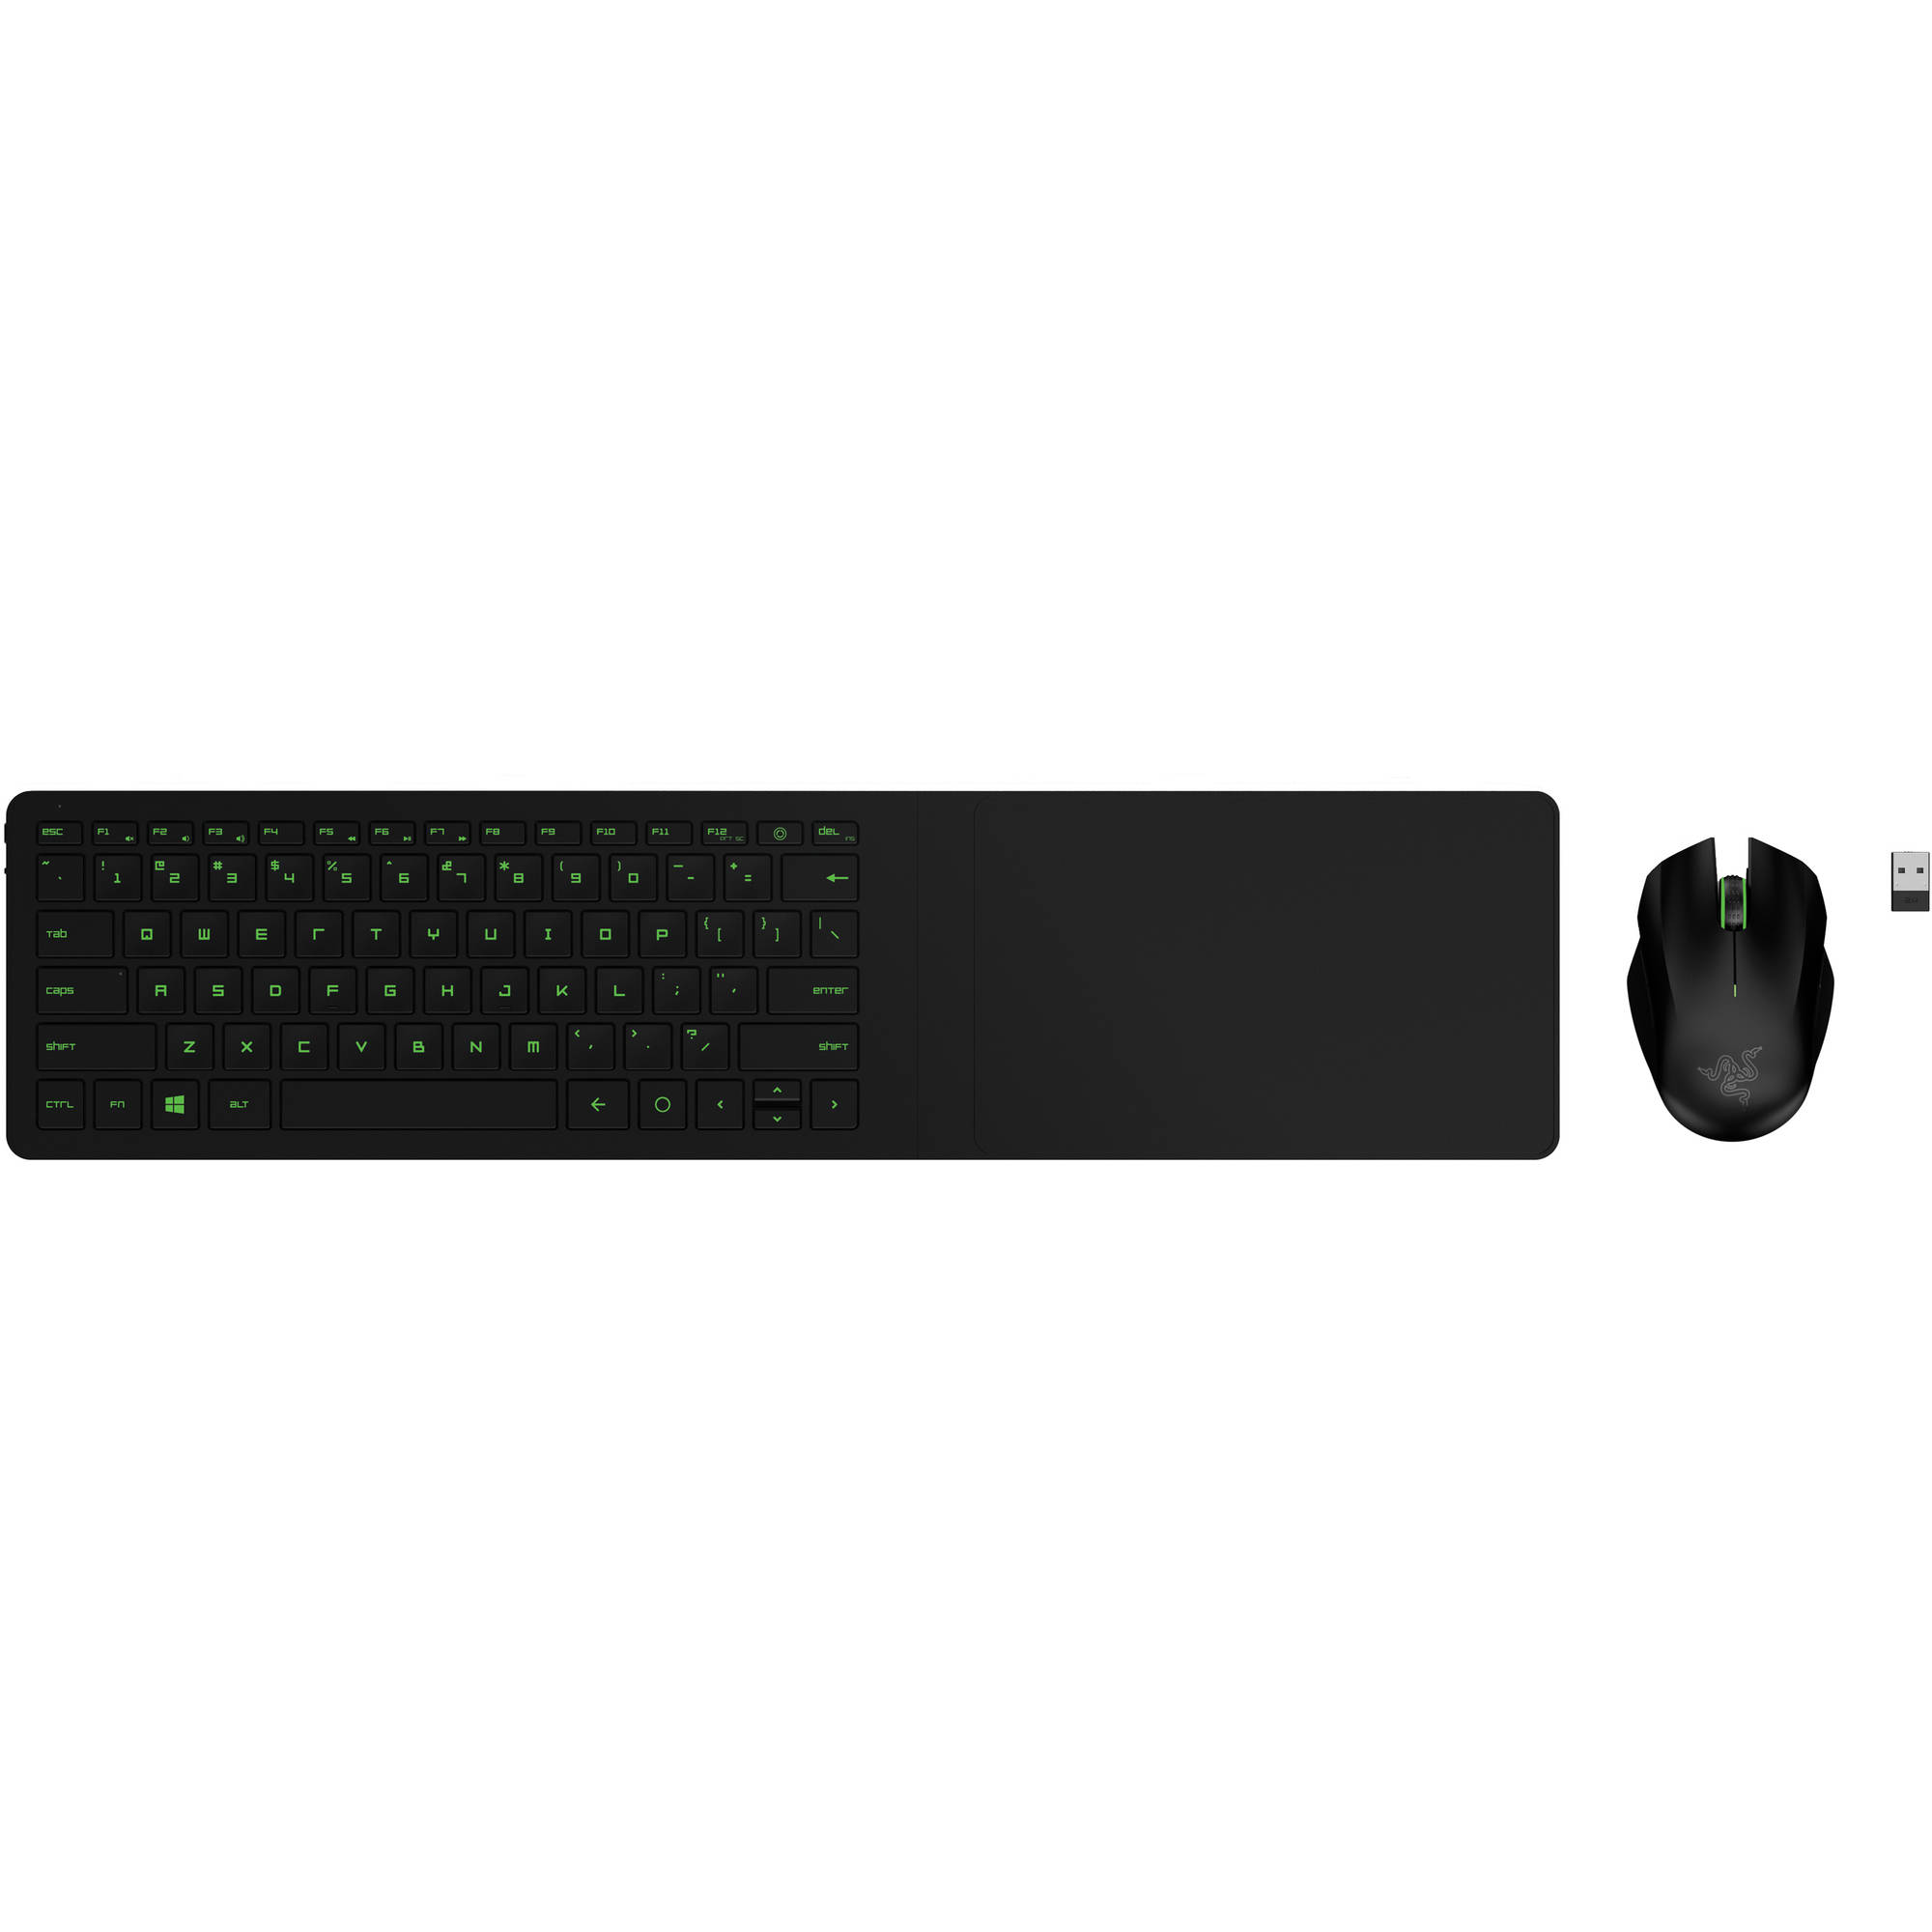 Razer Turret Living Room Gaming Mouse and Lapboard (RZ84-01330100-B3U1) by Razer